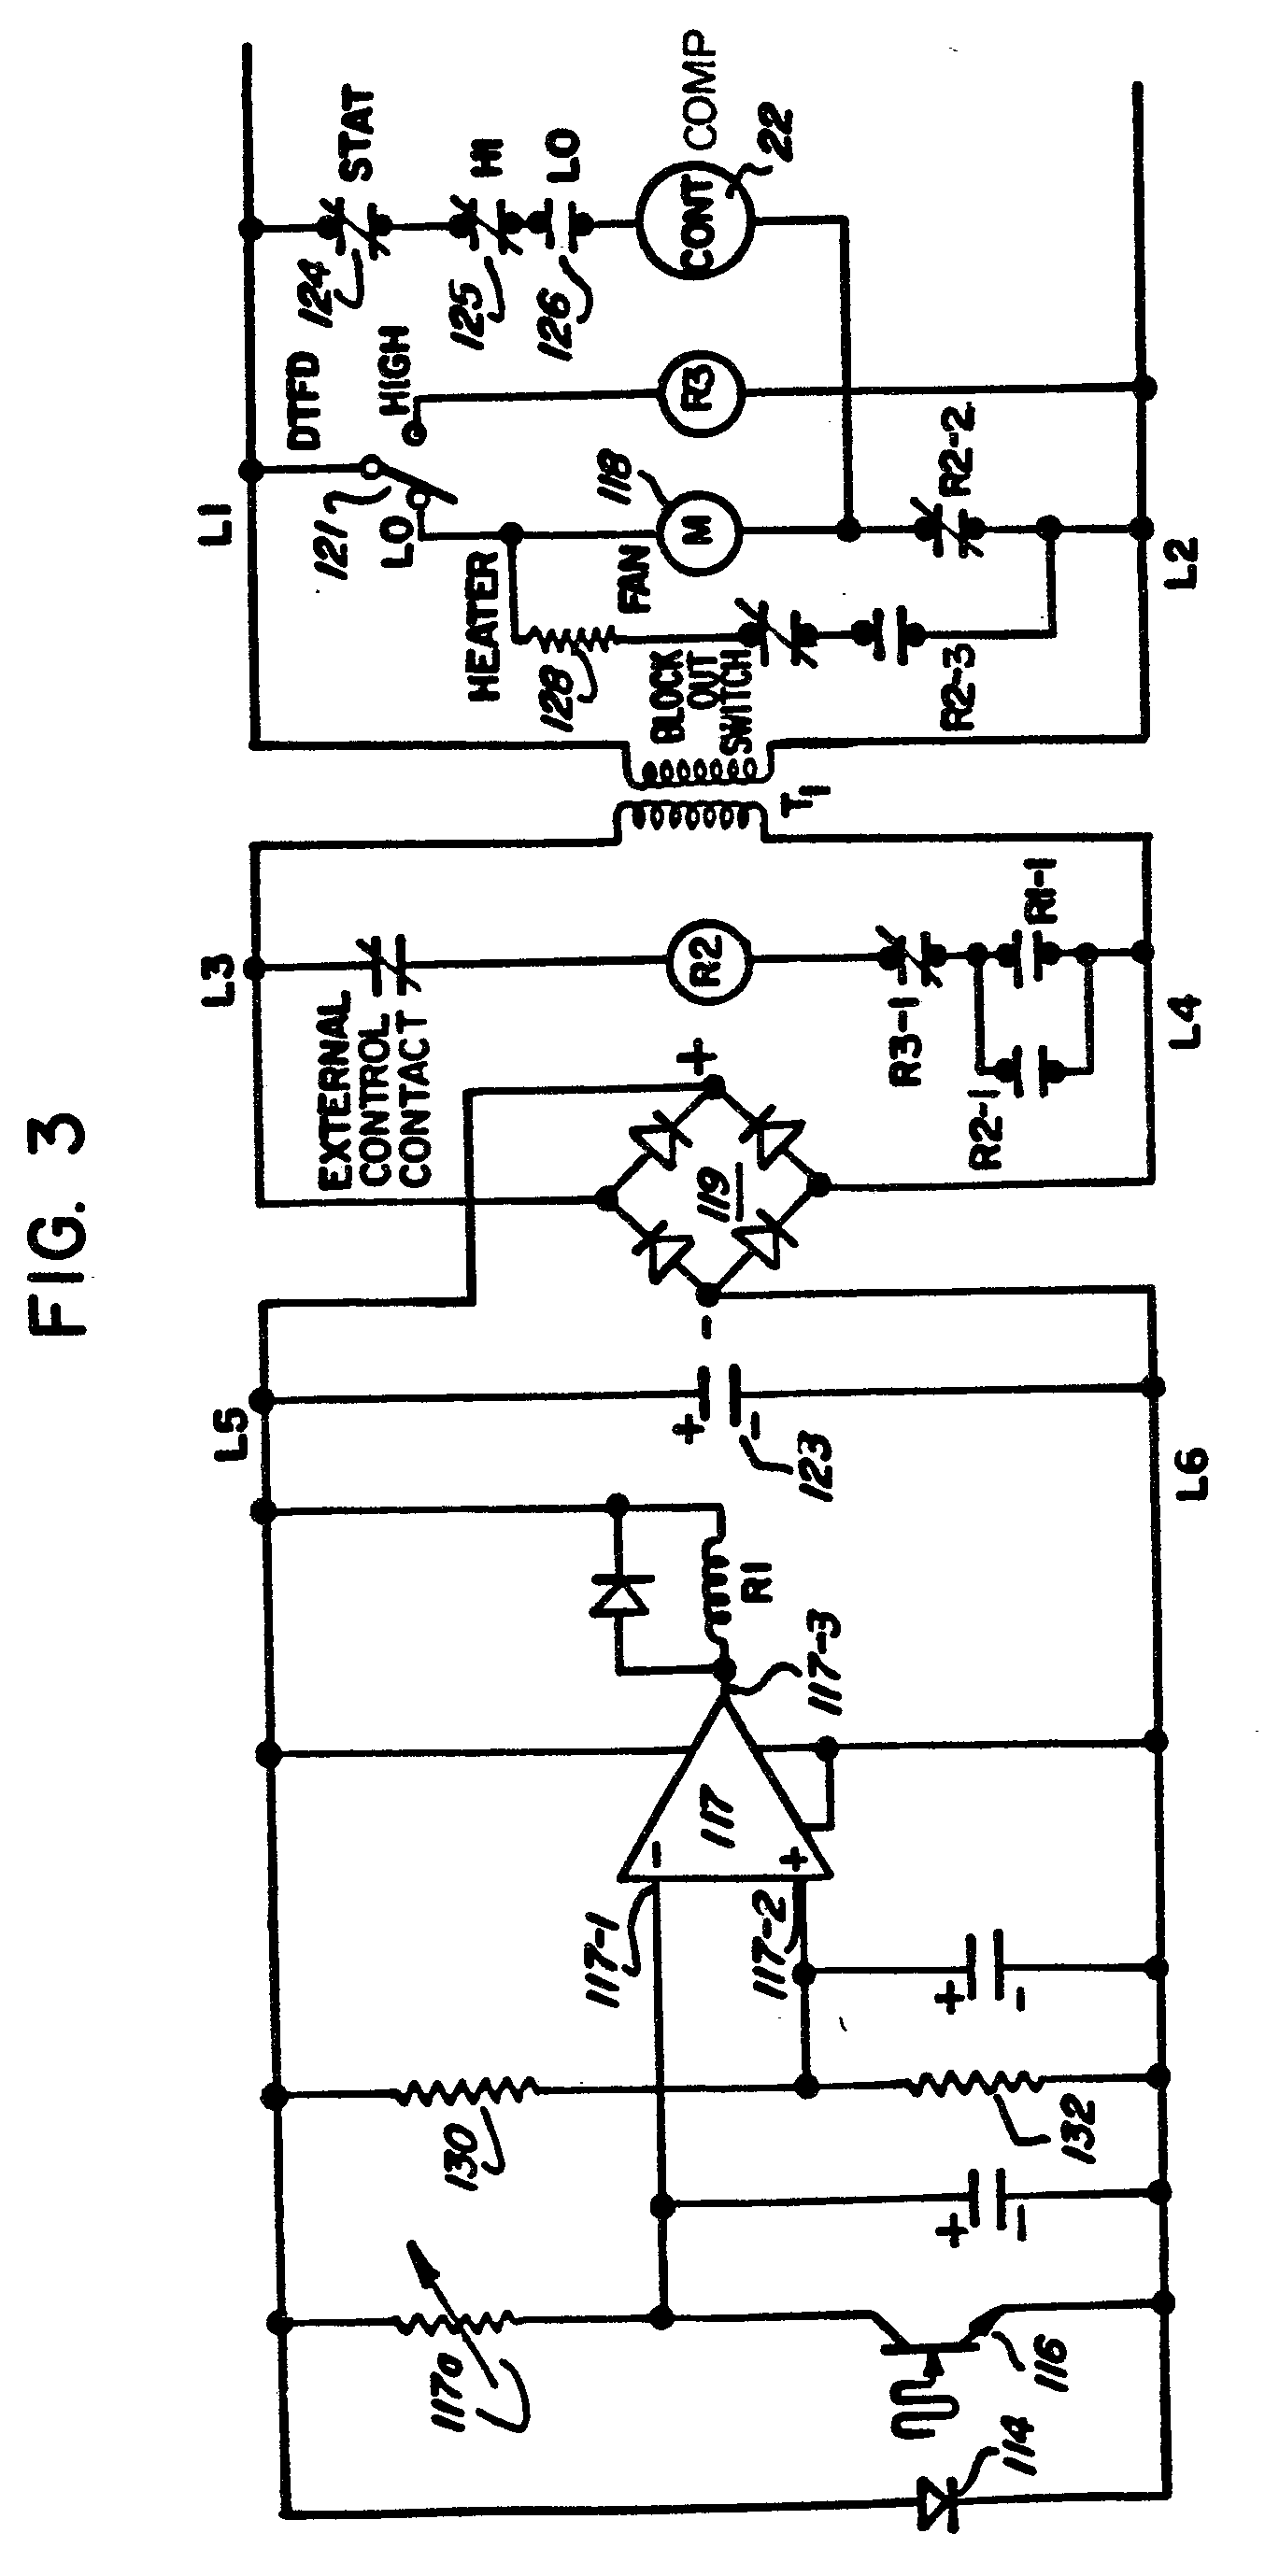 imgf0002 patent ep0066862a1 demand defrost system google patents defrost termination switch wiring diagram at n-0.co